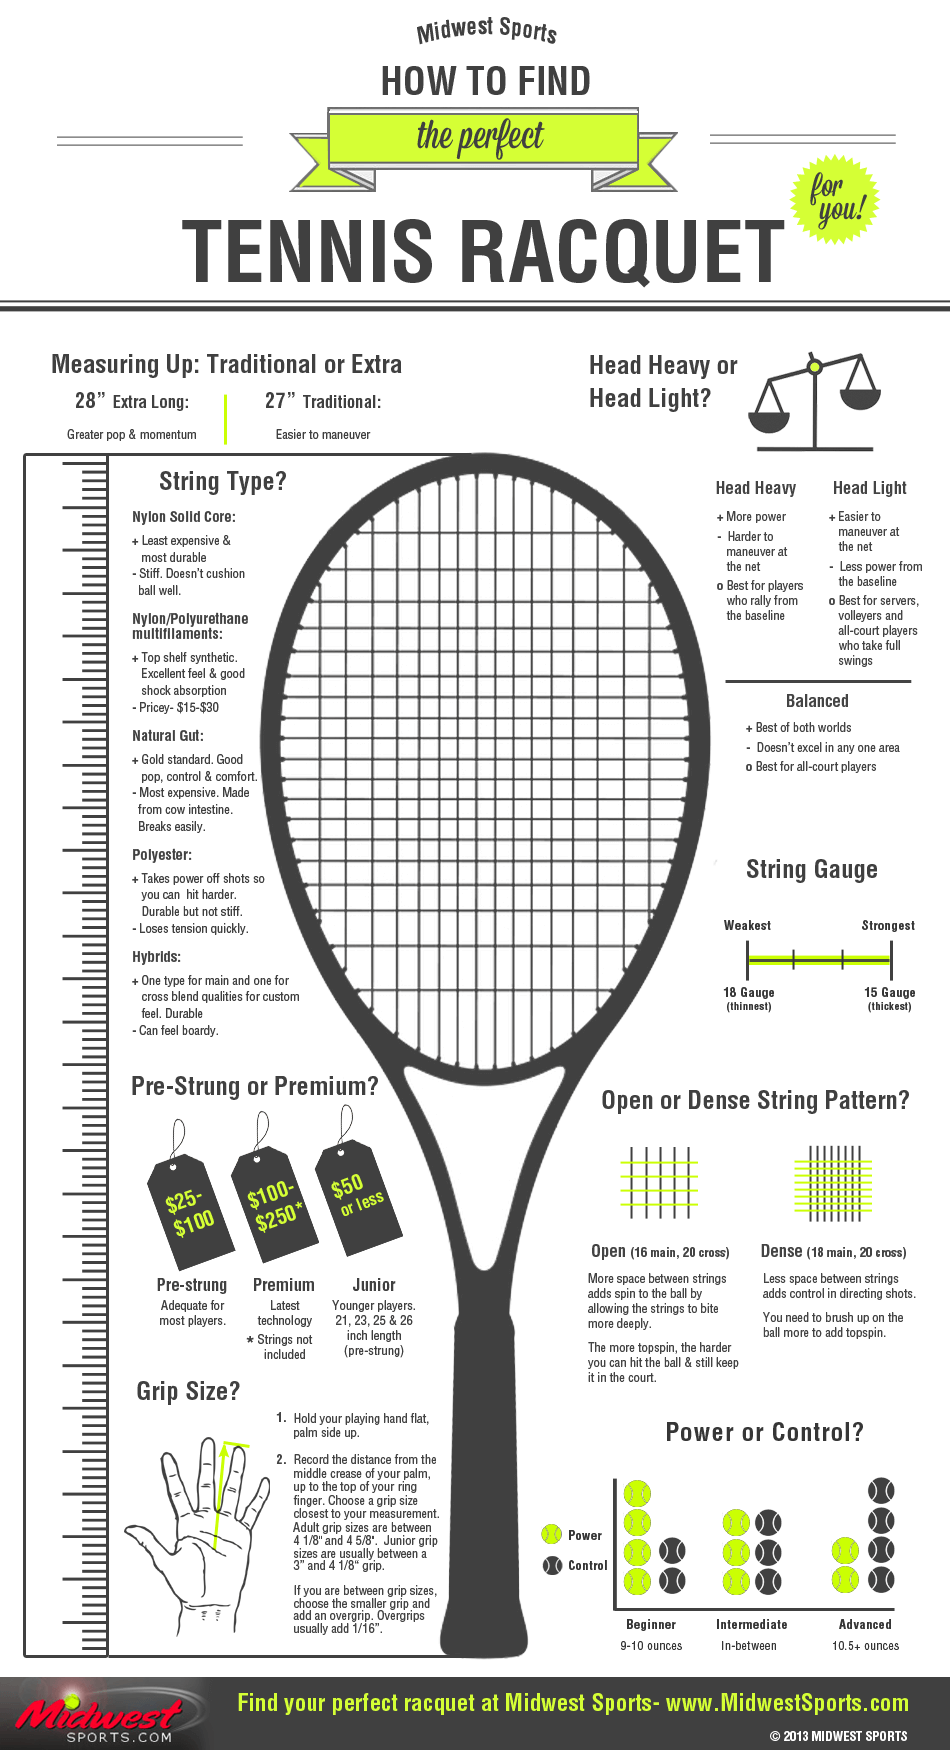 Embed How To Find The Perfect Tennis Racquet On Your Site Copy And Paste Code Below